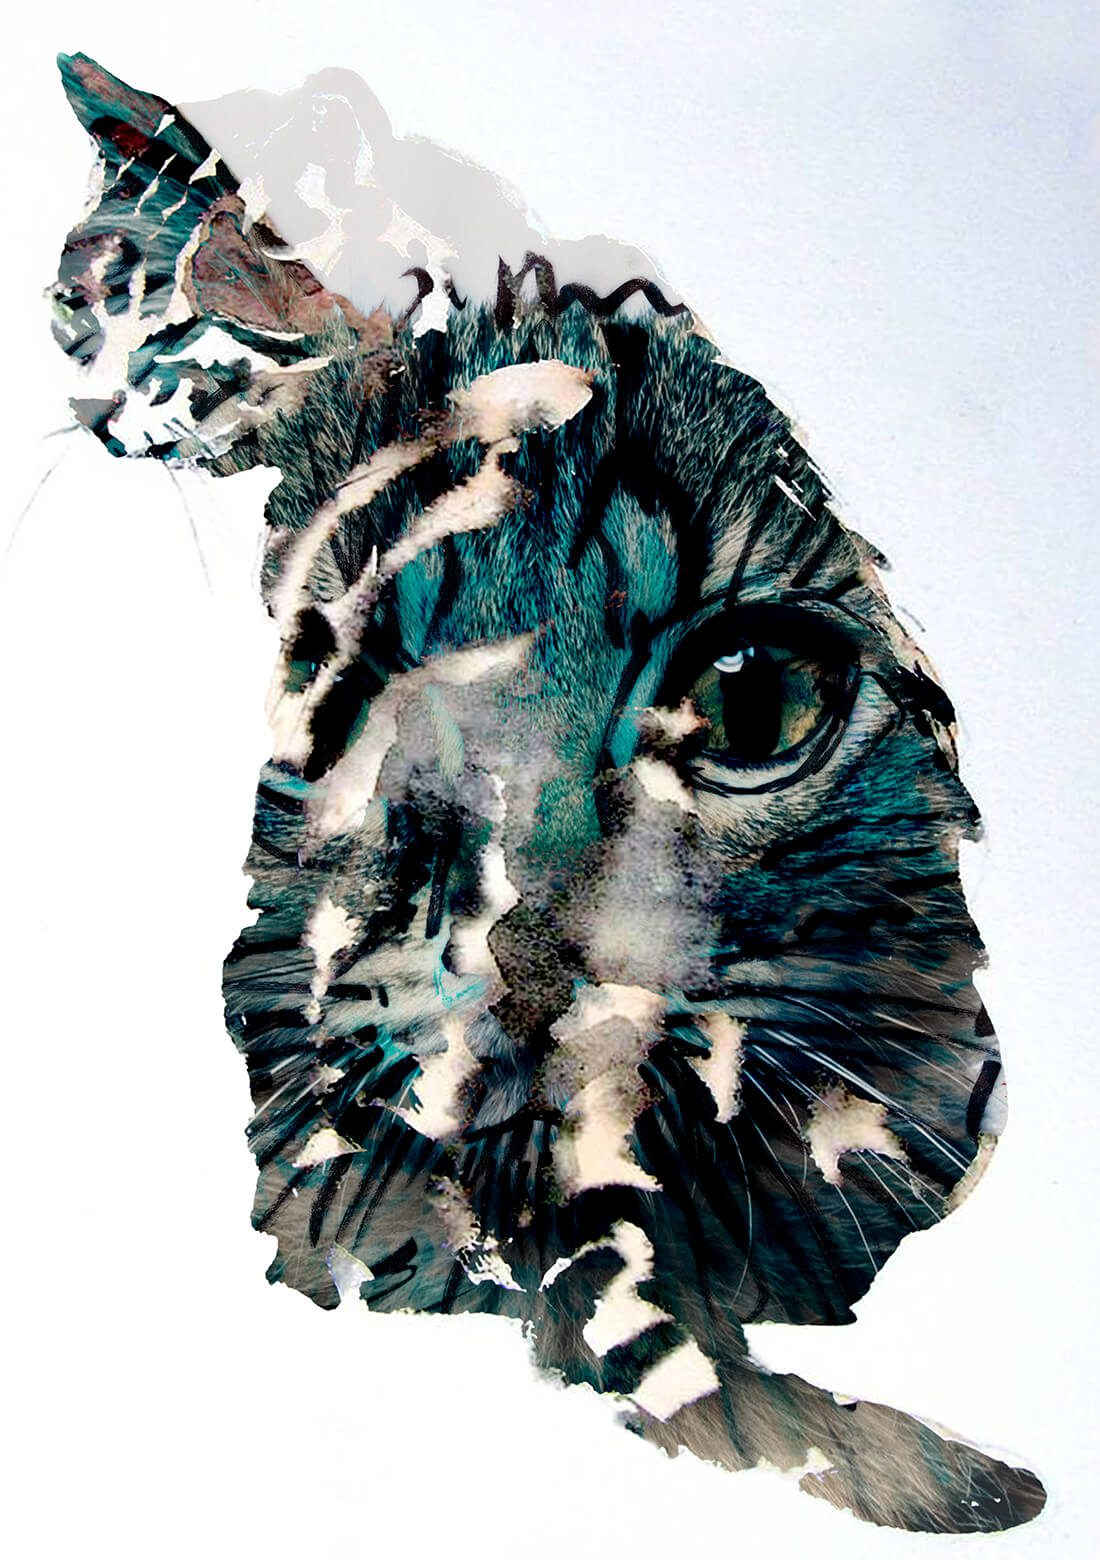 Par les yeux d'un chat - mixed media schilderij